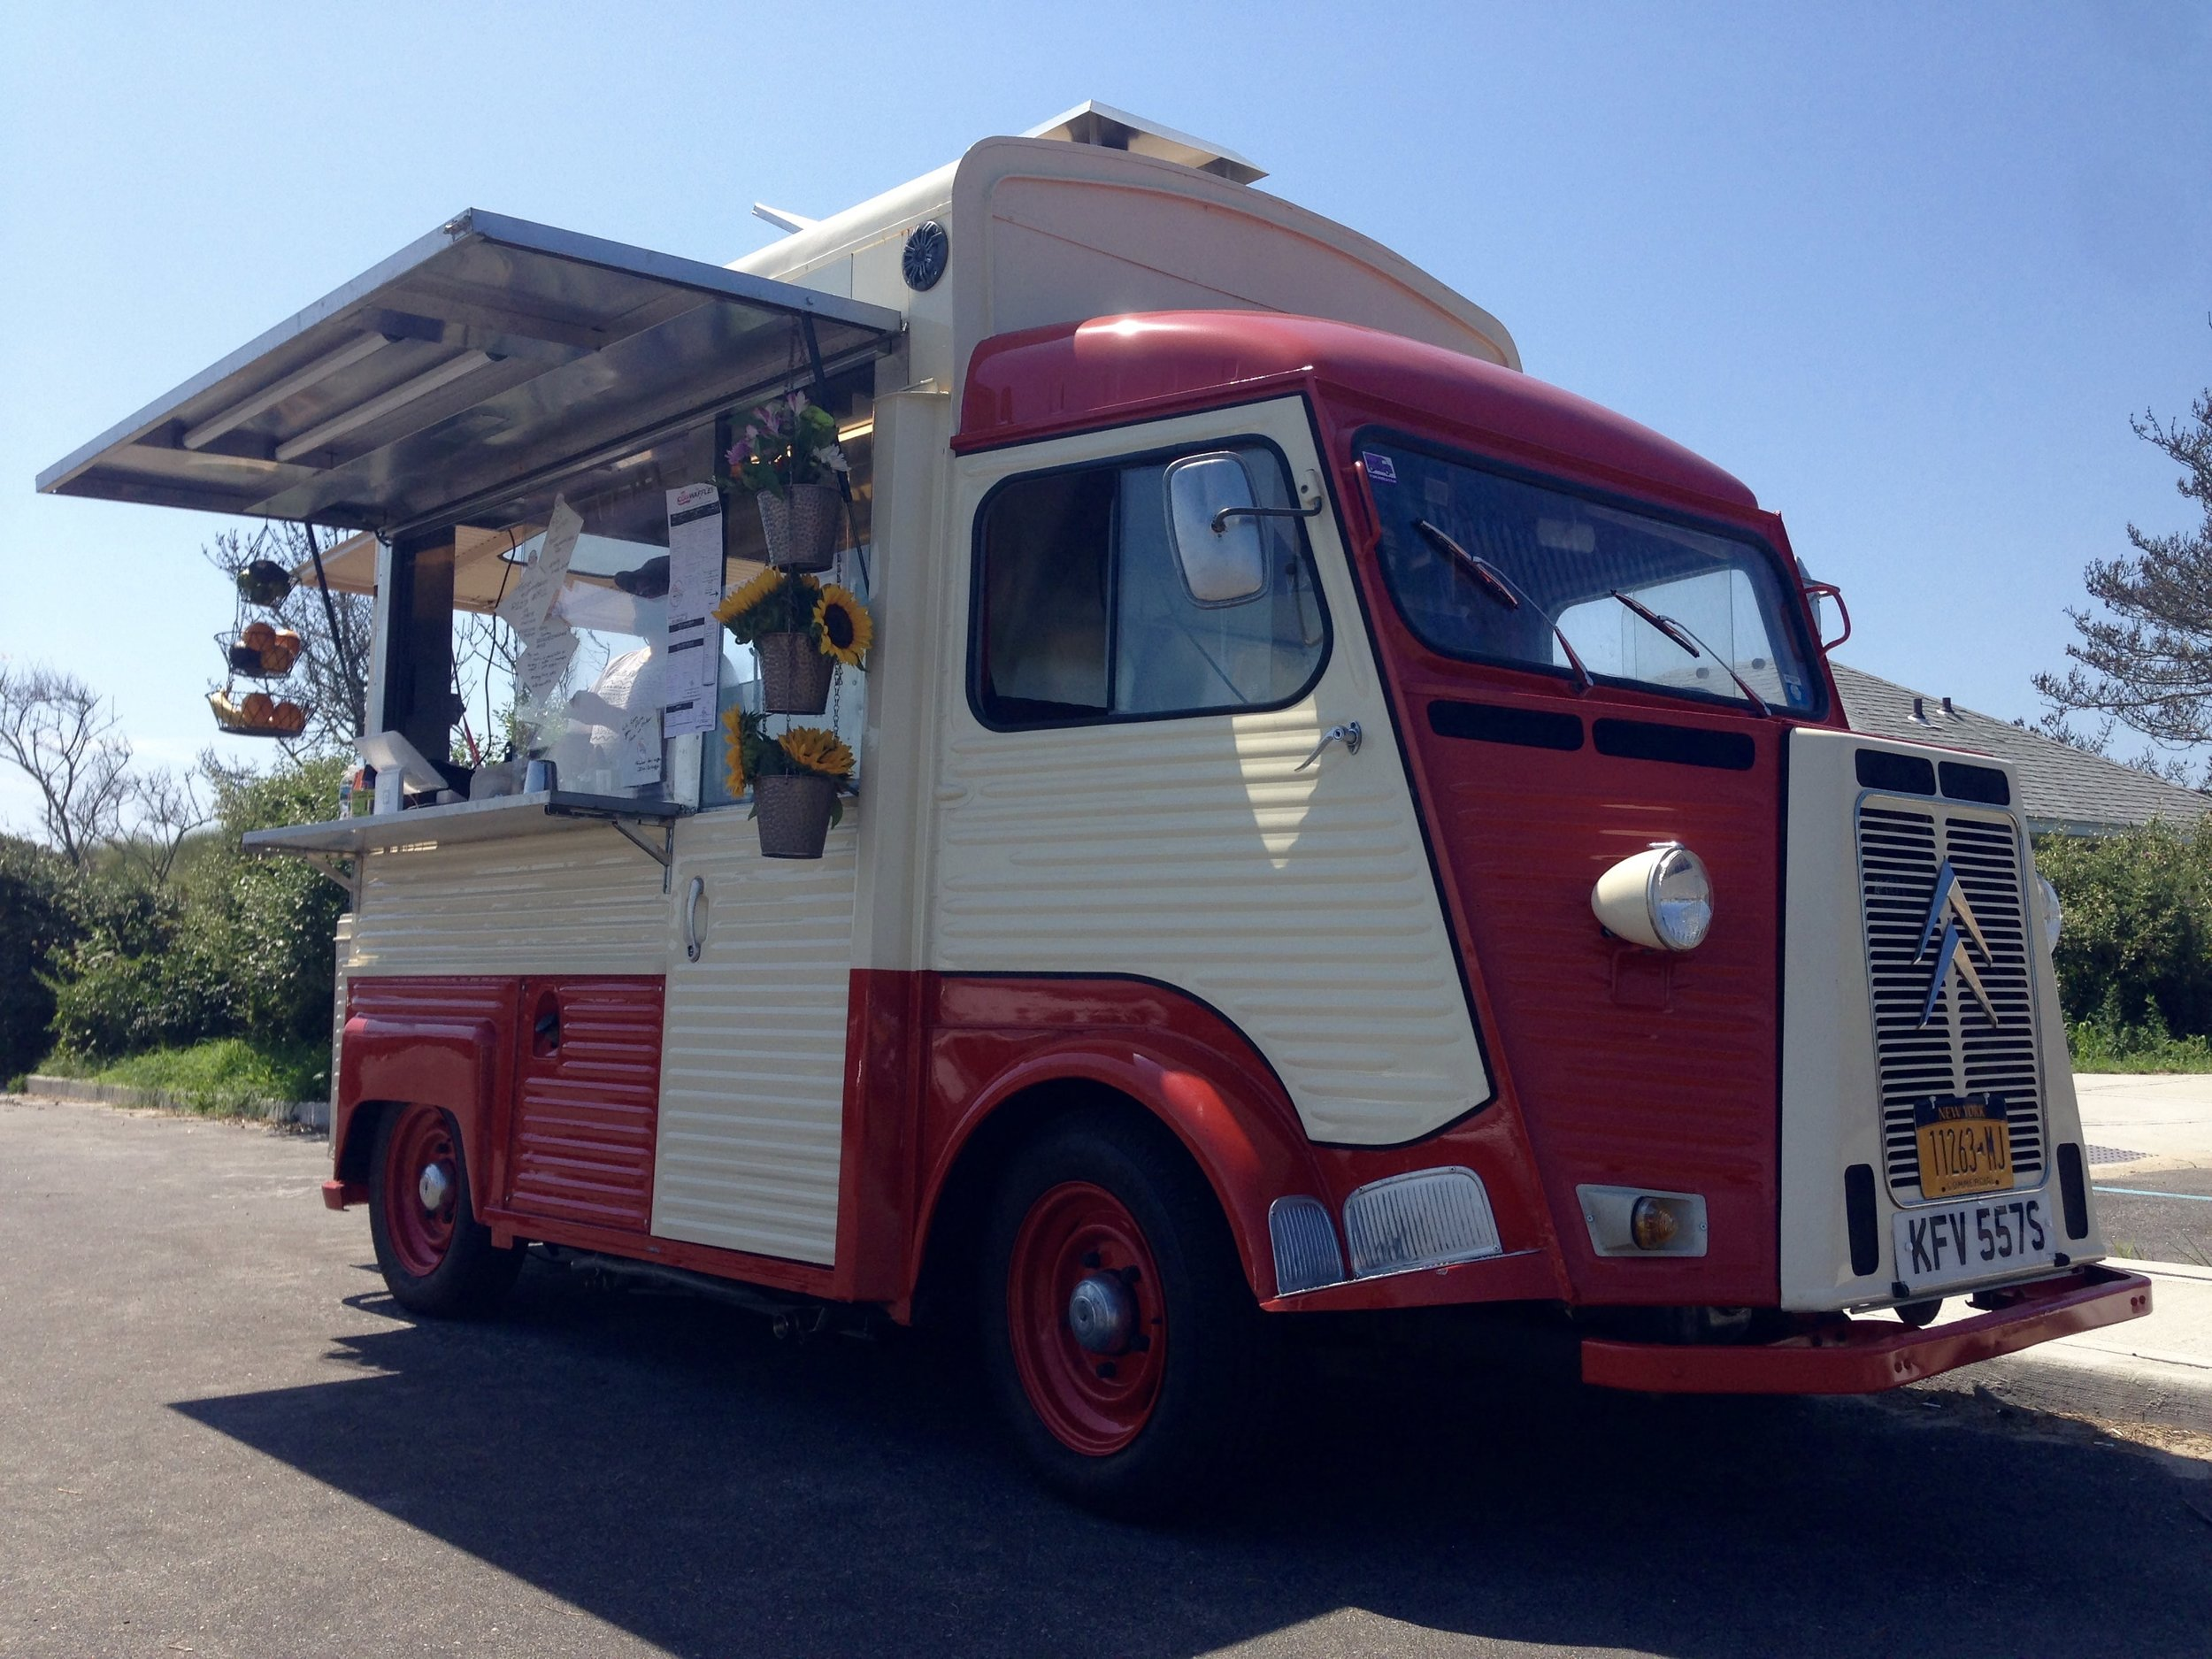 Bex Waffles Retro Food Truck